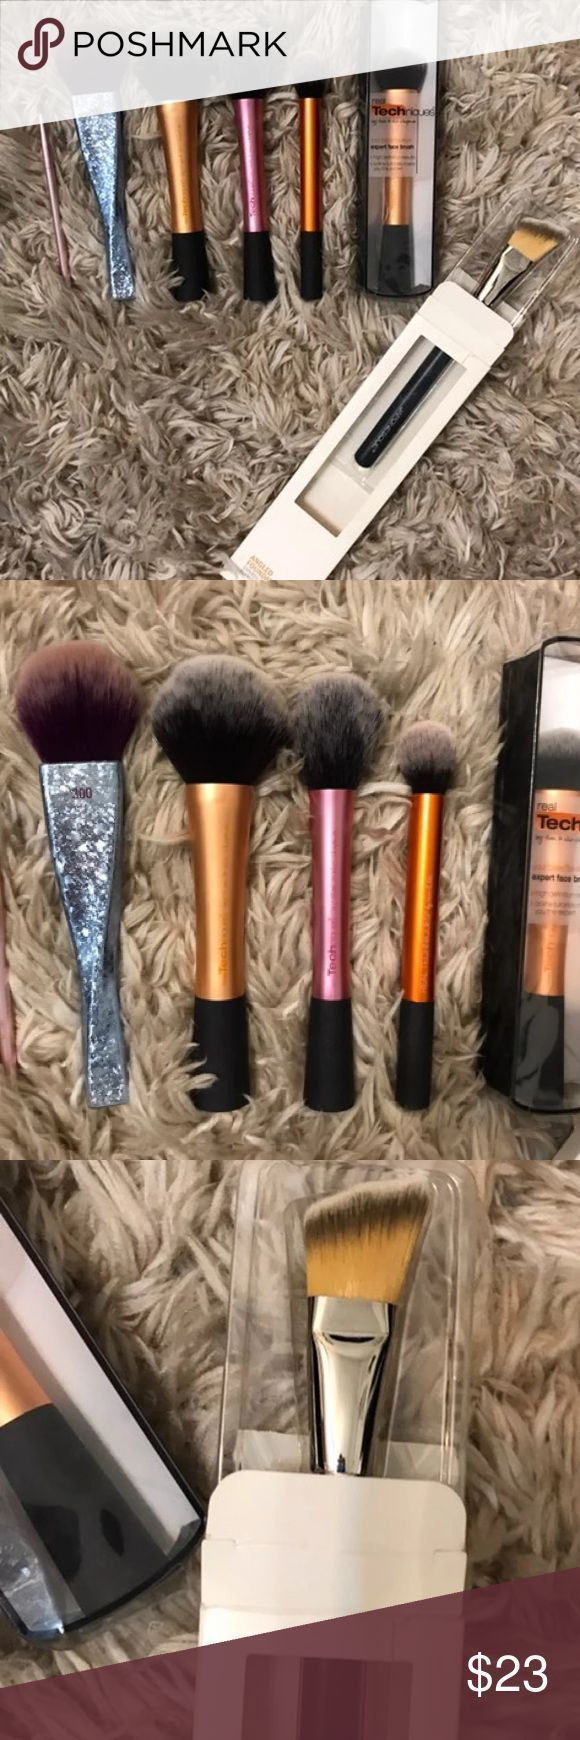 amp real japanese makeuptechniquesfaces new r